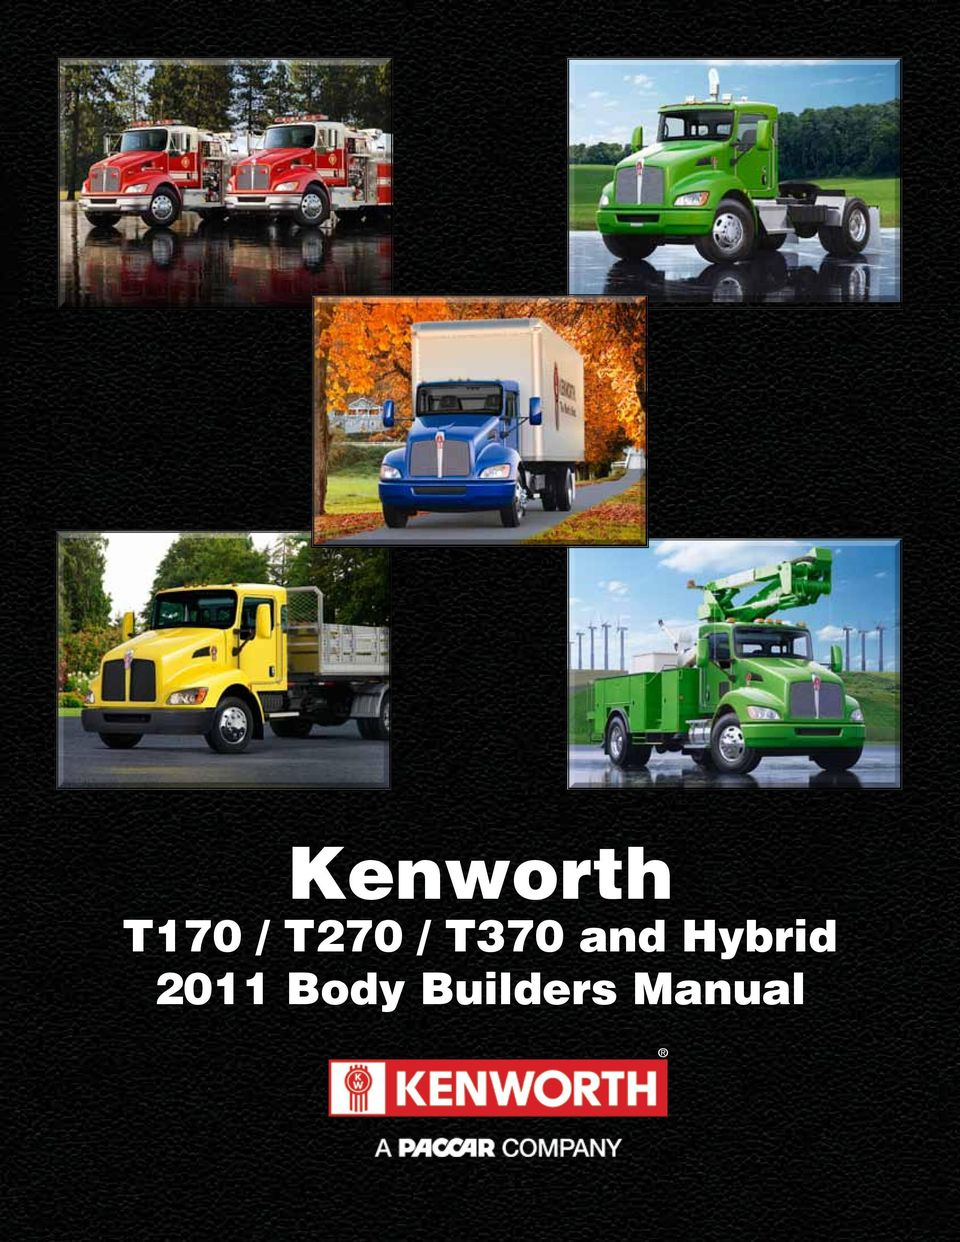 1 Kenworth T170 / T270 / T370 and Hybrid 2011 Body Builders Manual